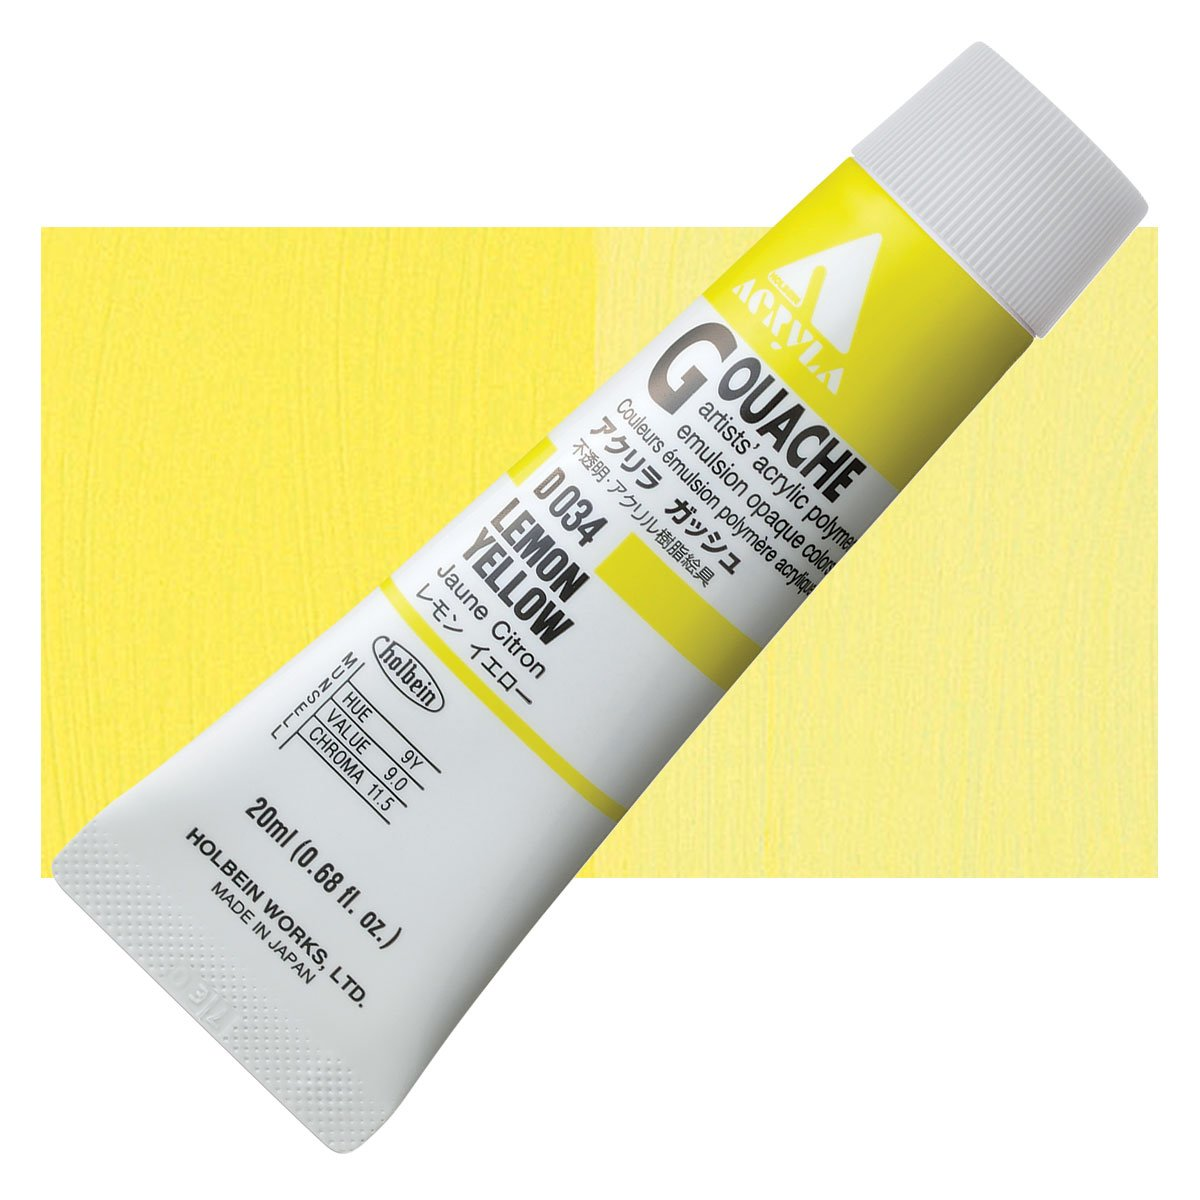 Holbein Acryla Gouache 20ml Tubes - Lemon Yellow by Holbein - K. A. Artist Shop